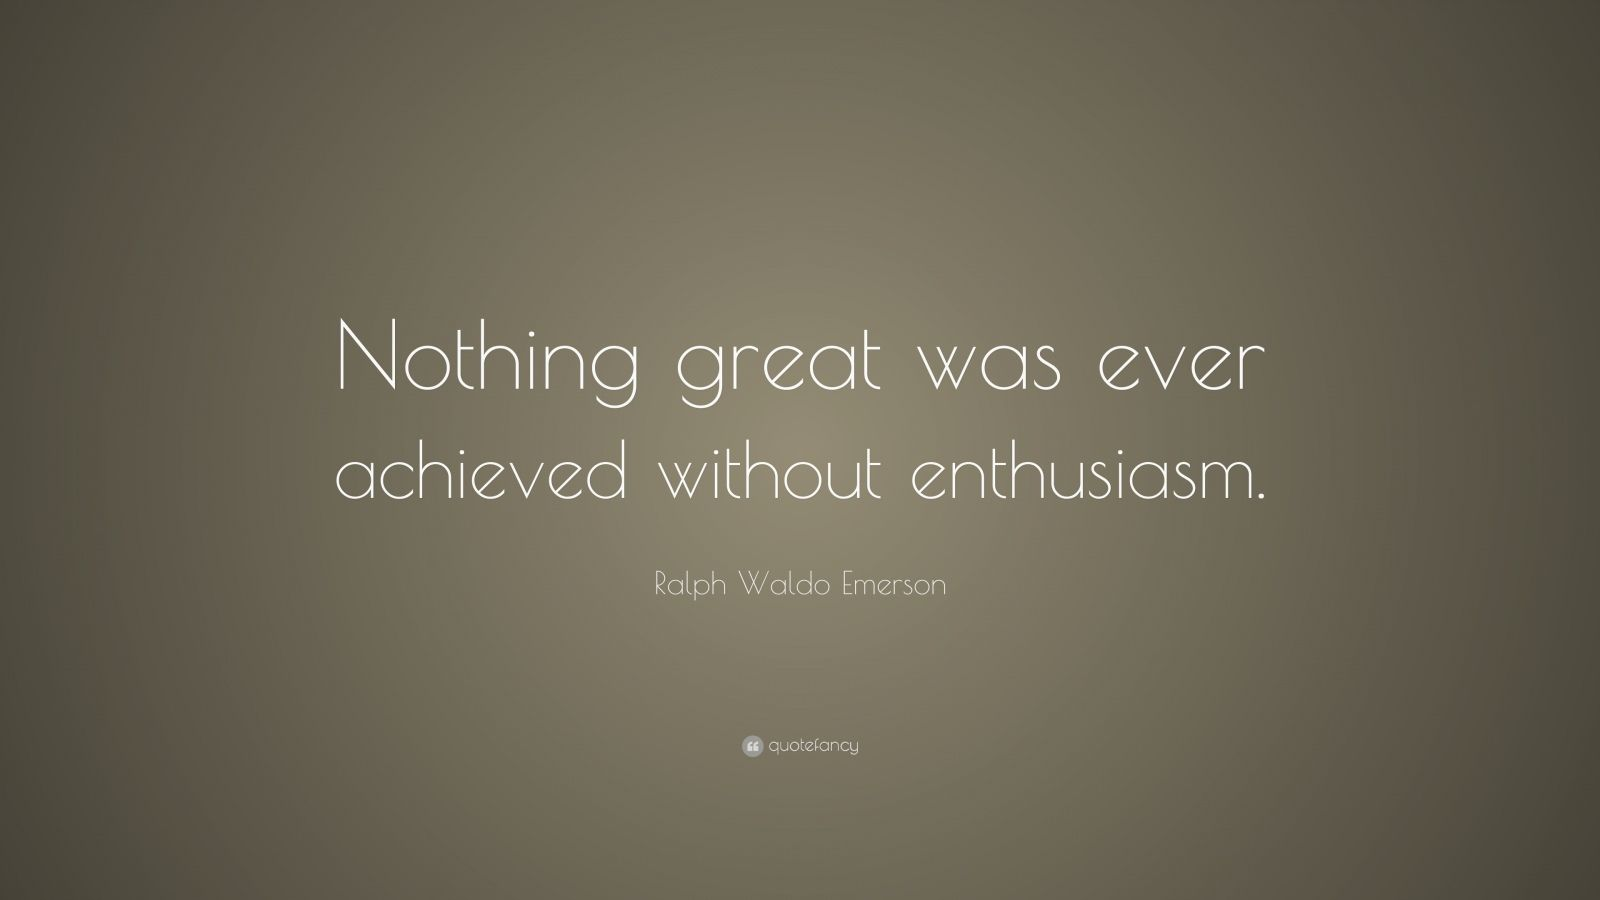 nothing great was ever achieved without enthusiasm Nothing great was ever achieved without enthusiasm (ralph waldo emerson) smigroup is today one of the world's largest producers of packaging machines smigroup consists of smi, the group's parent company, with its internal divisions (smiflexi, smiform, smiline, smimec, smipal), of the subsidiary companies smipack.